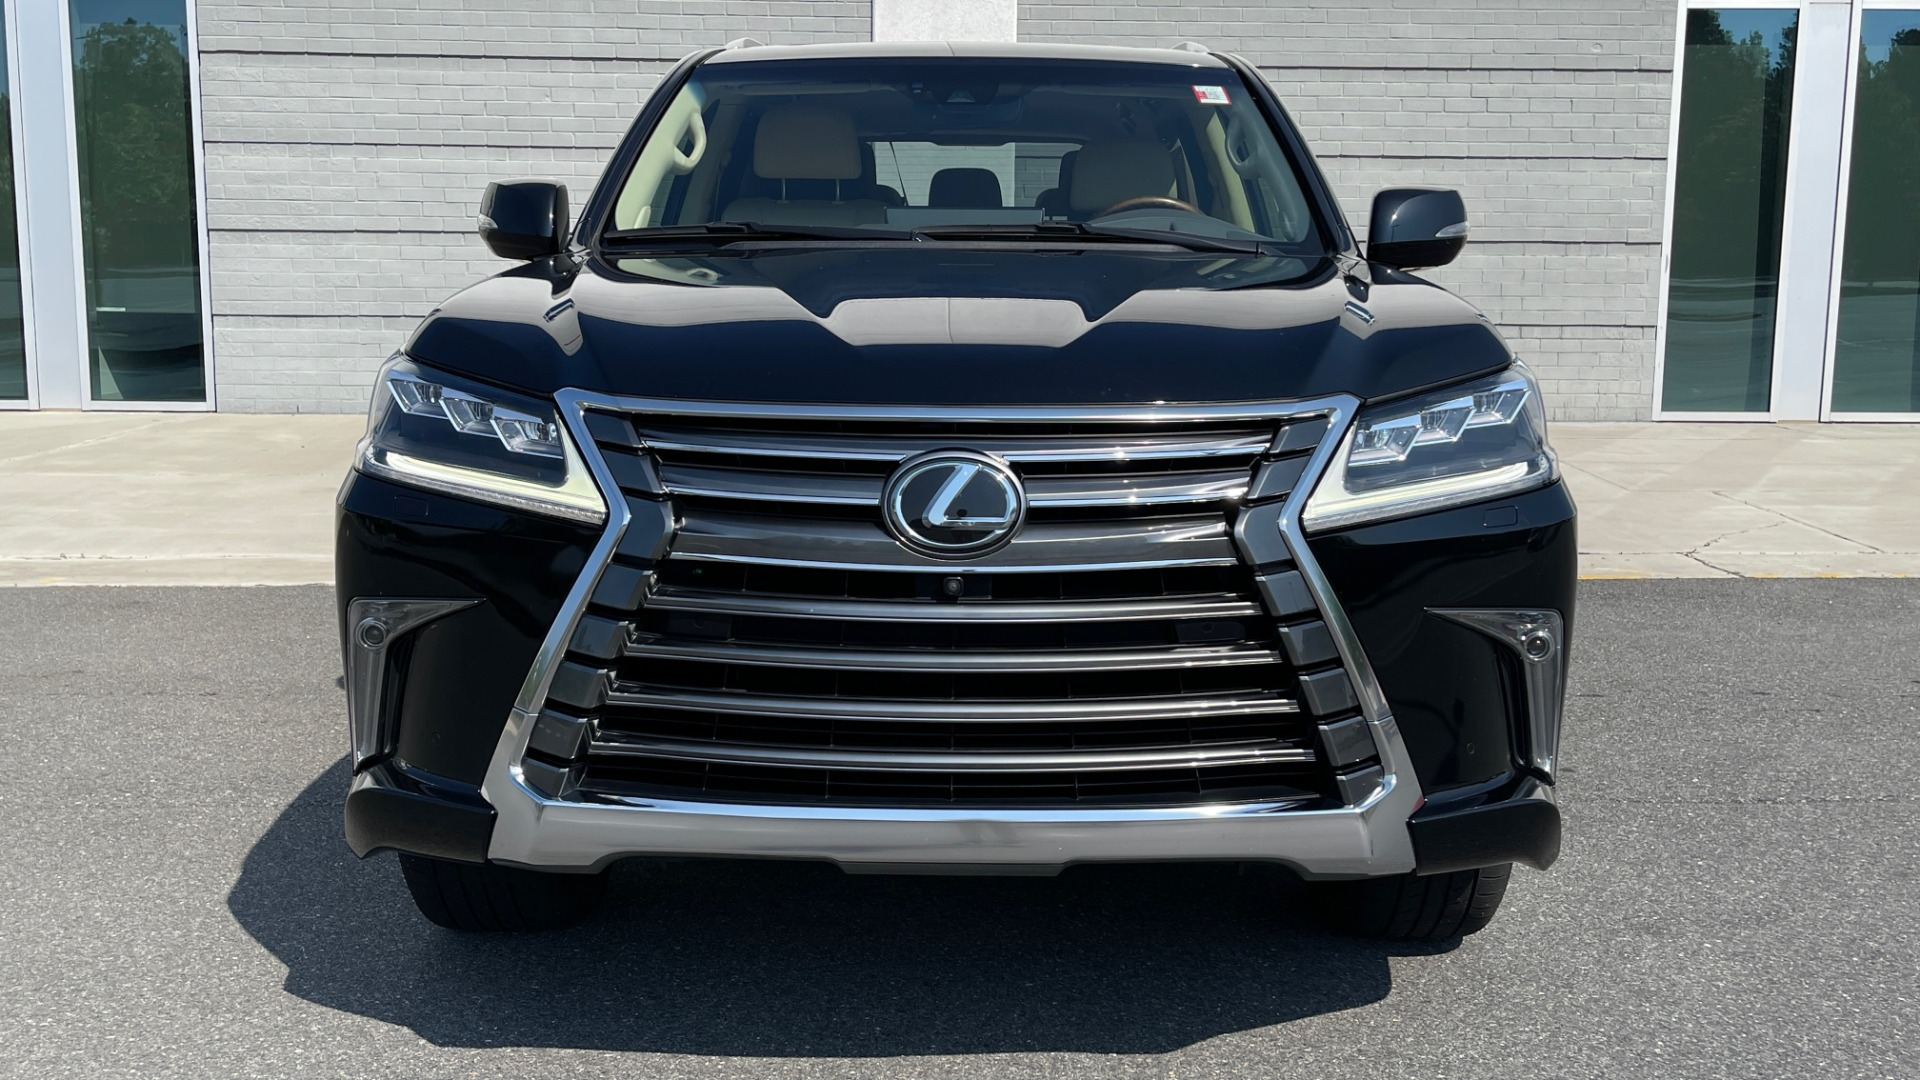 Used 2017 Lexus LX 570 LUXURY / 5.7L V8 / NAV / SUNROOF / 3-ROW / DVD / REARVIEW for sale $63,995 at Formula Imports in Charlotte NC 28227 9